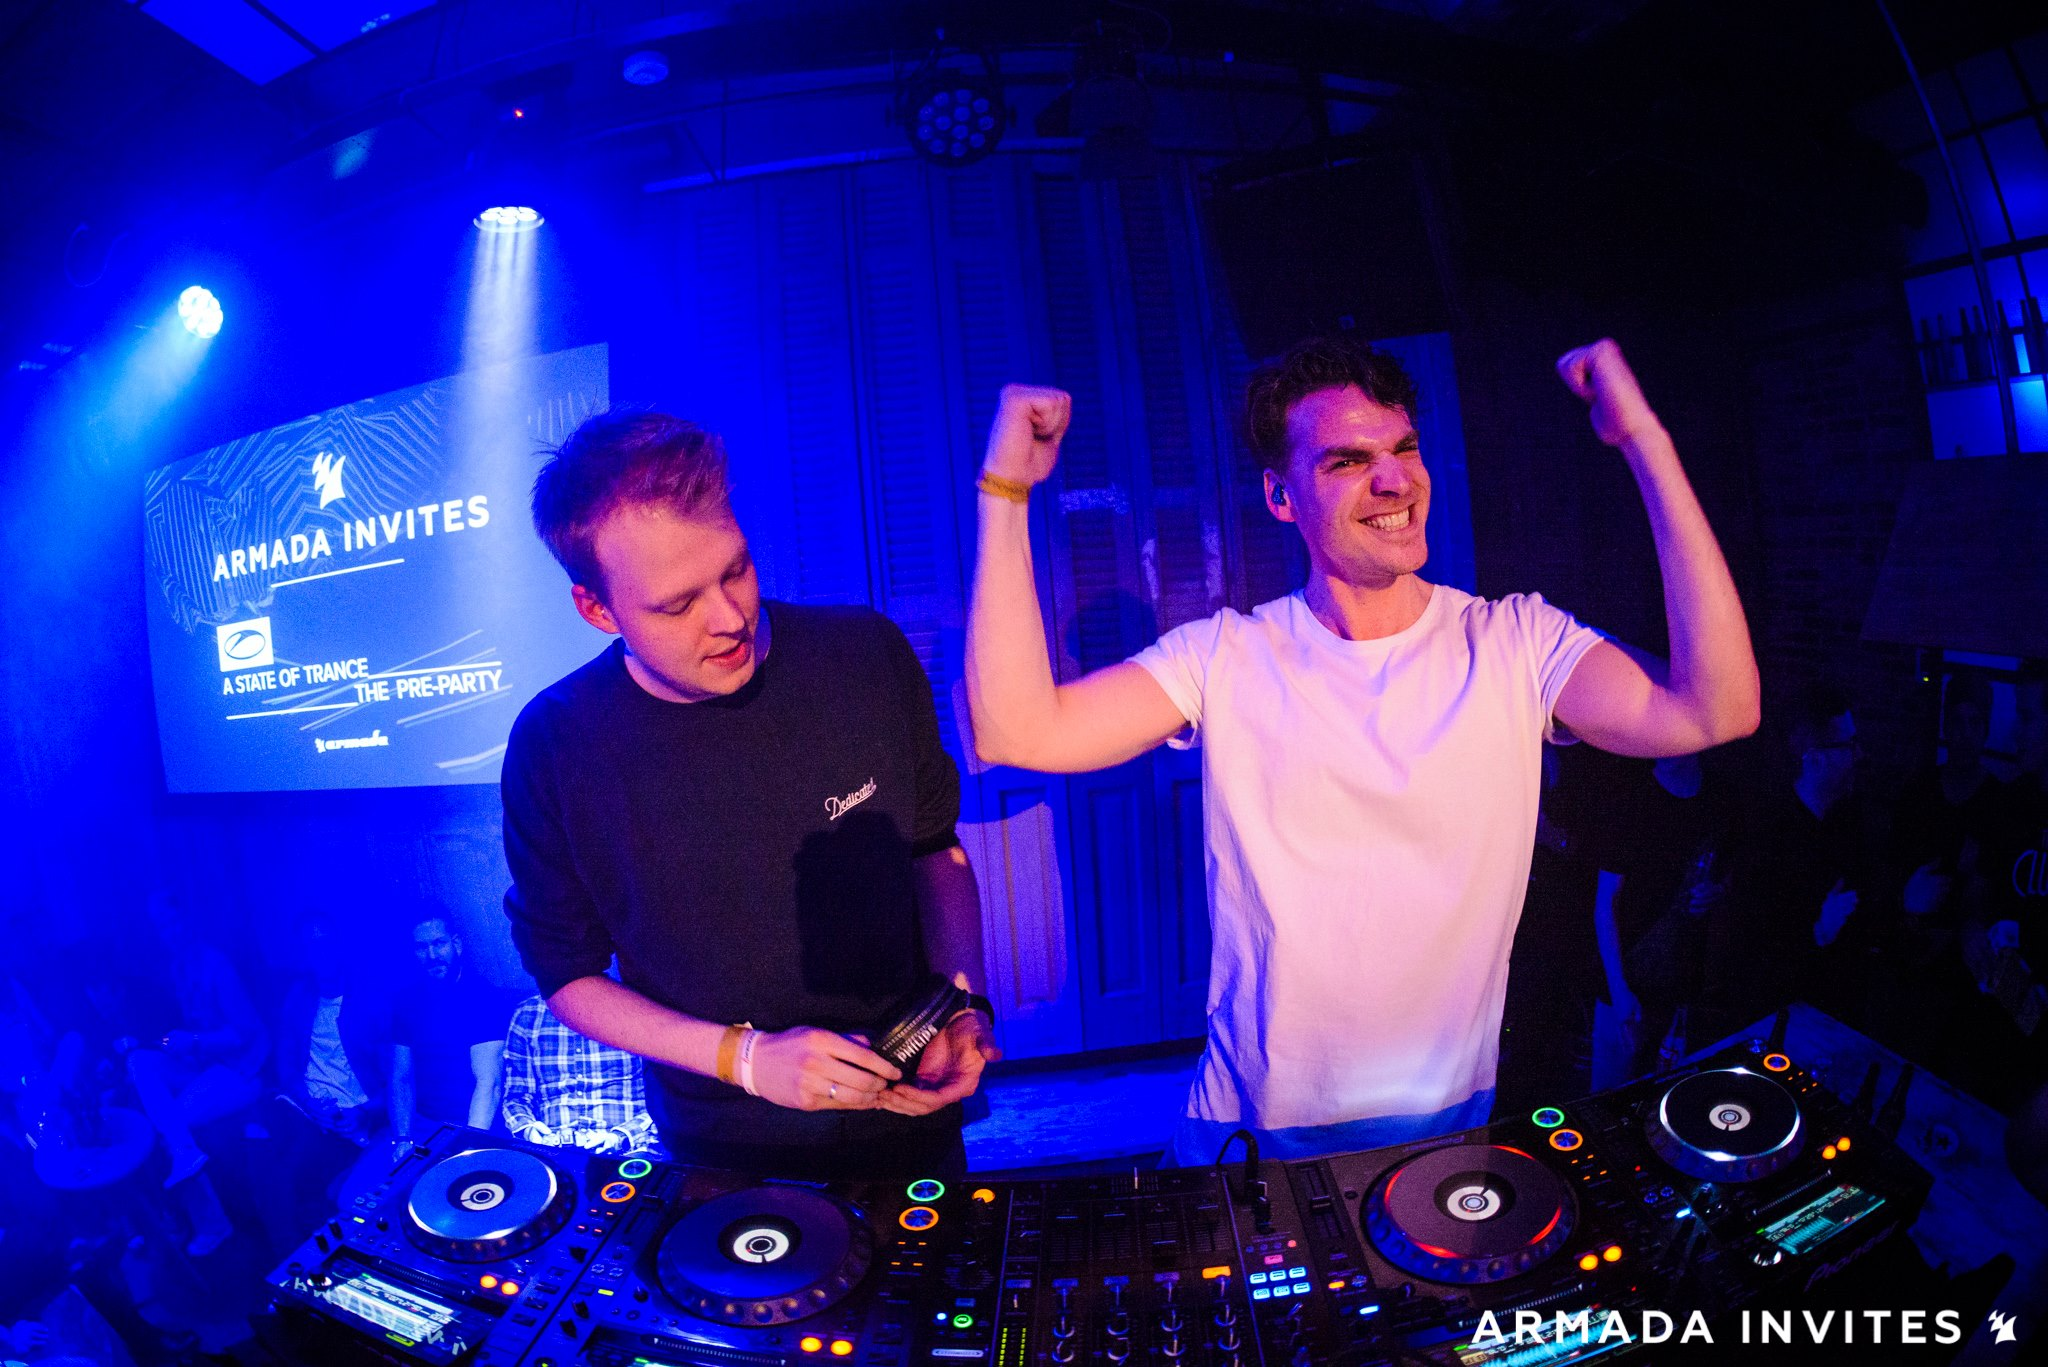 Armada Invites: A State Of Trance, the ASOT 800 Pre-Party